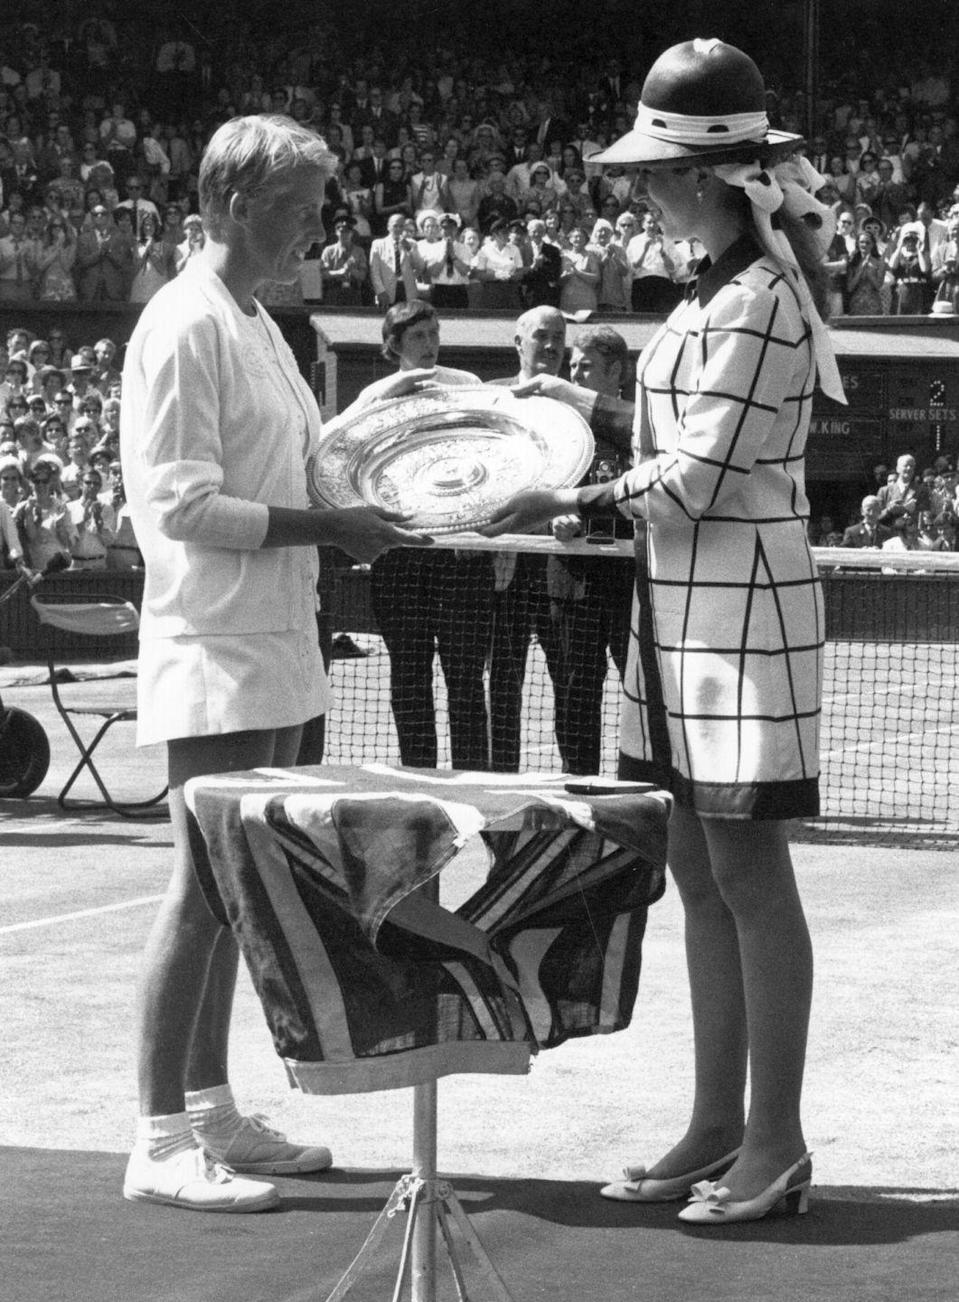 <p><strong>1969</strong> Princess Anne wore a checked mini dress and a statement hat for the tournament in 1969.</p>